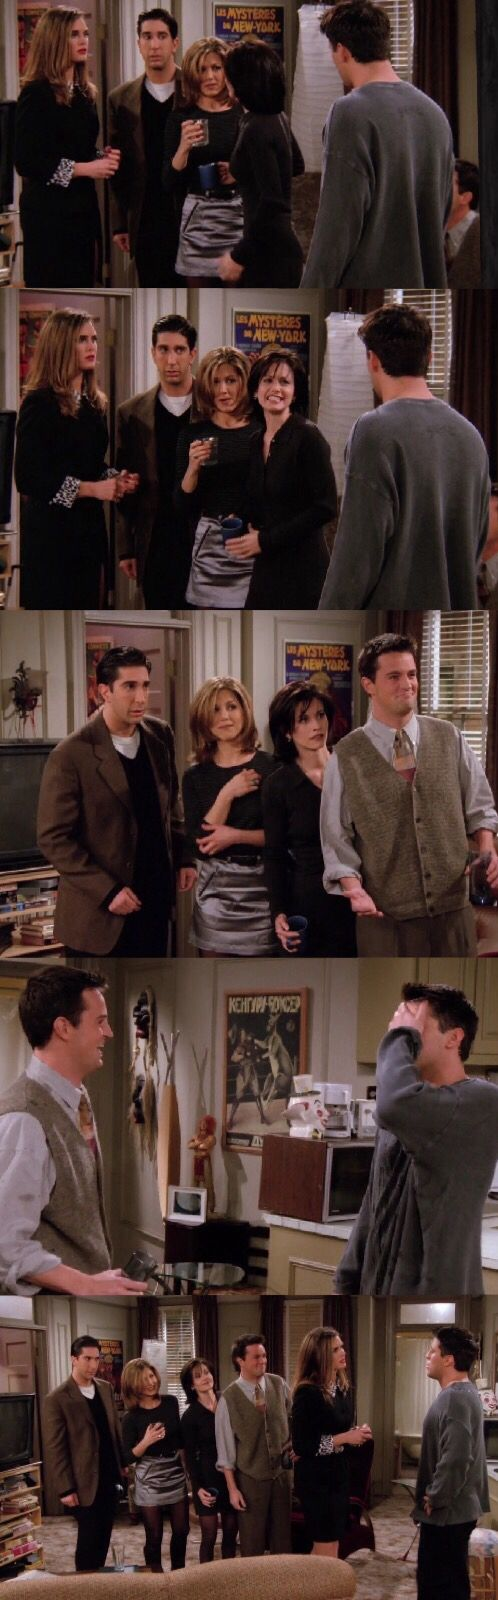 """Friends Season 2  Brooke Shields character is Erica  Erica, """"Is this true?""""  Rachel, """"Yes it is, he lied and tried to sleep with me!"""" And throws the cup of in water in his face.  Monica, """"We were suppose to run away together and we didn't!"""" Also throws cup of water in his face.  Chandler, """"You left the toilet seat up, you bastard!"""" And so does Chandler"""